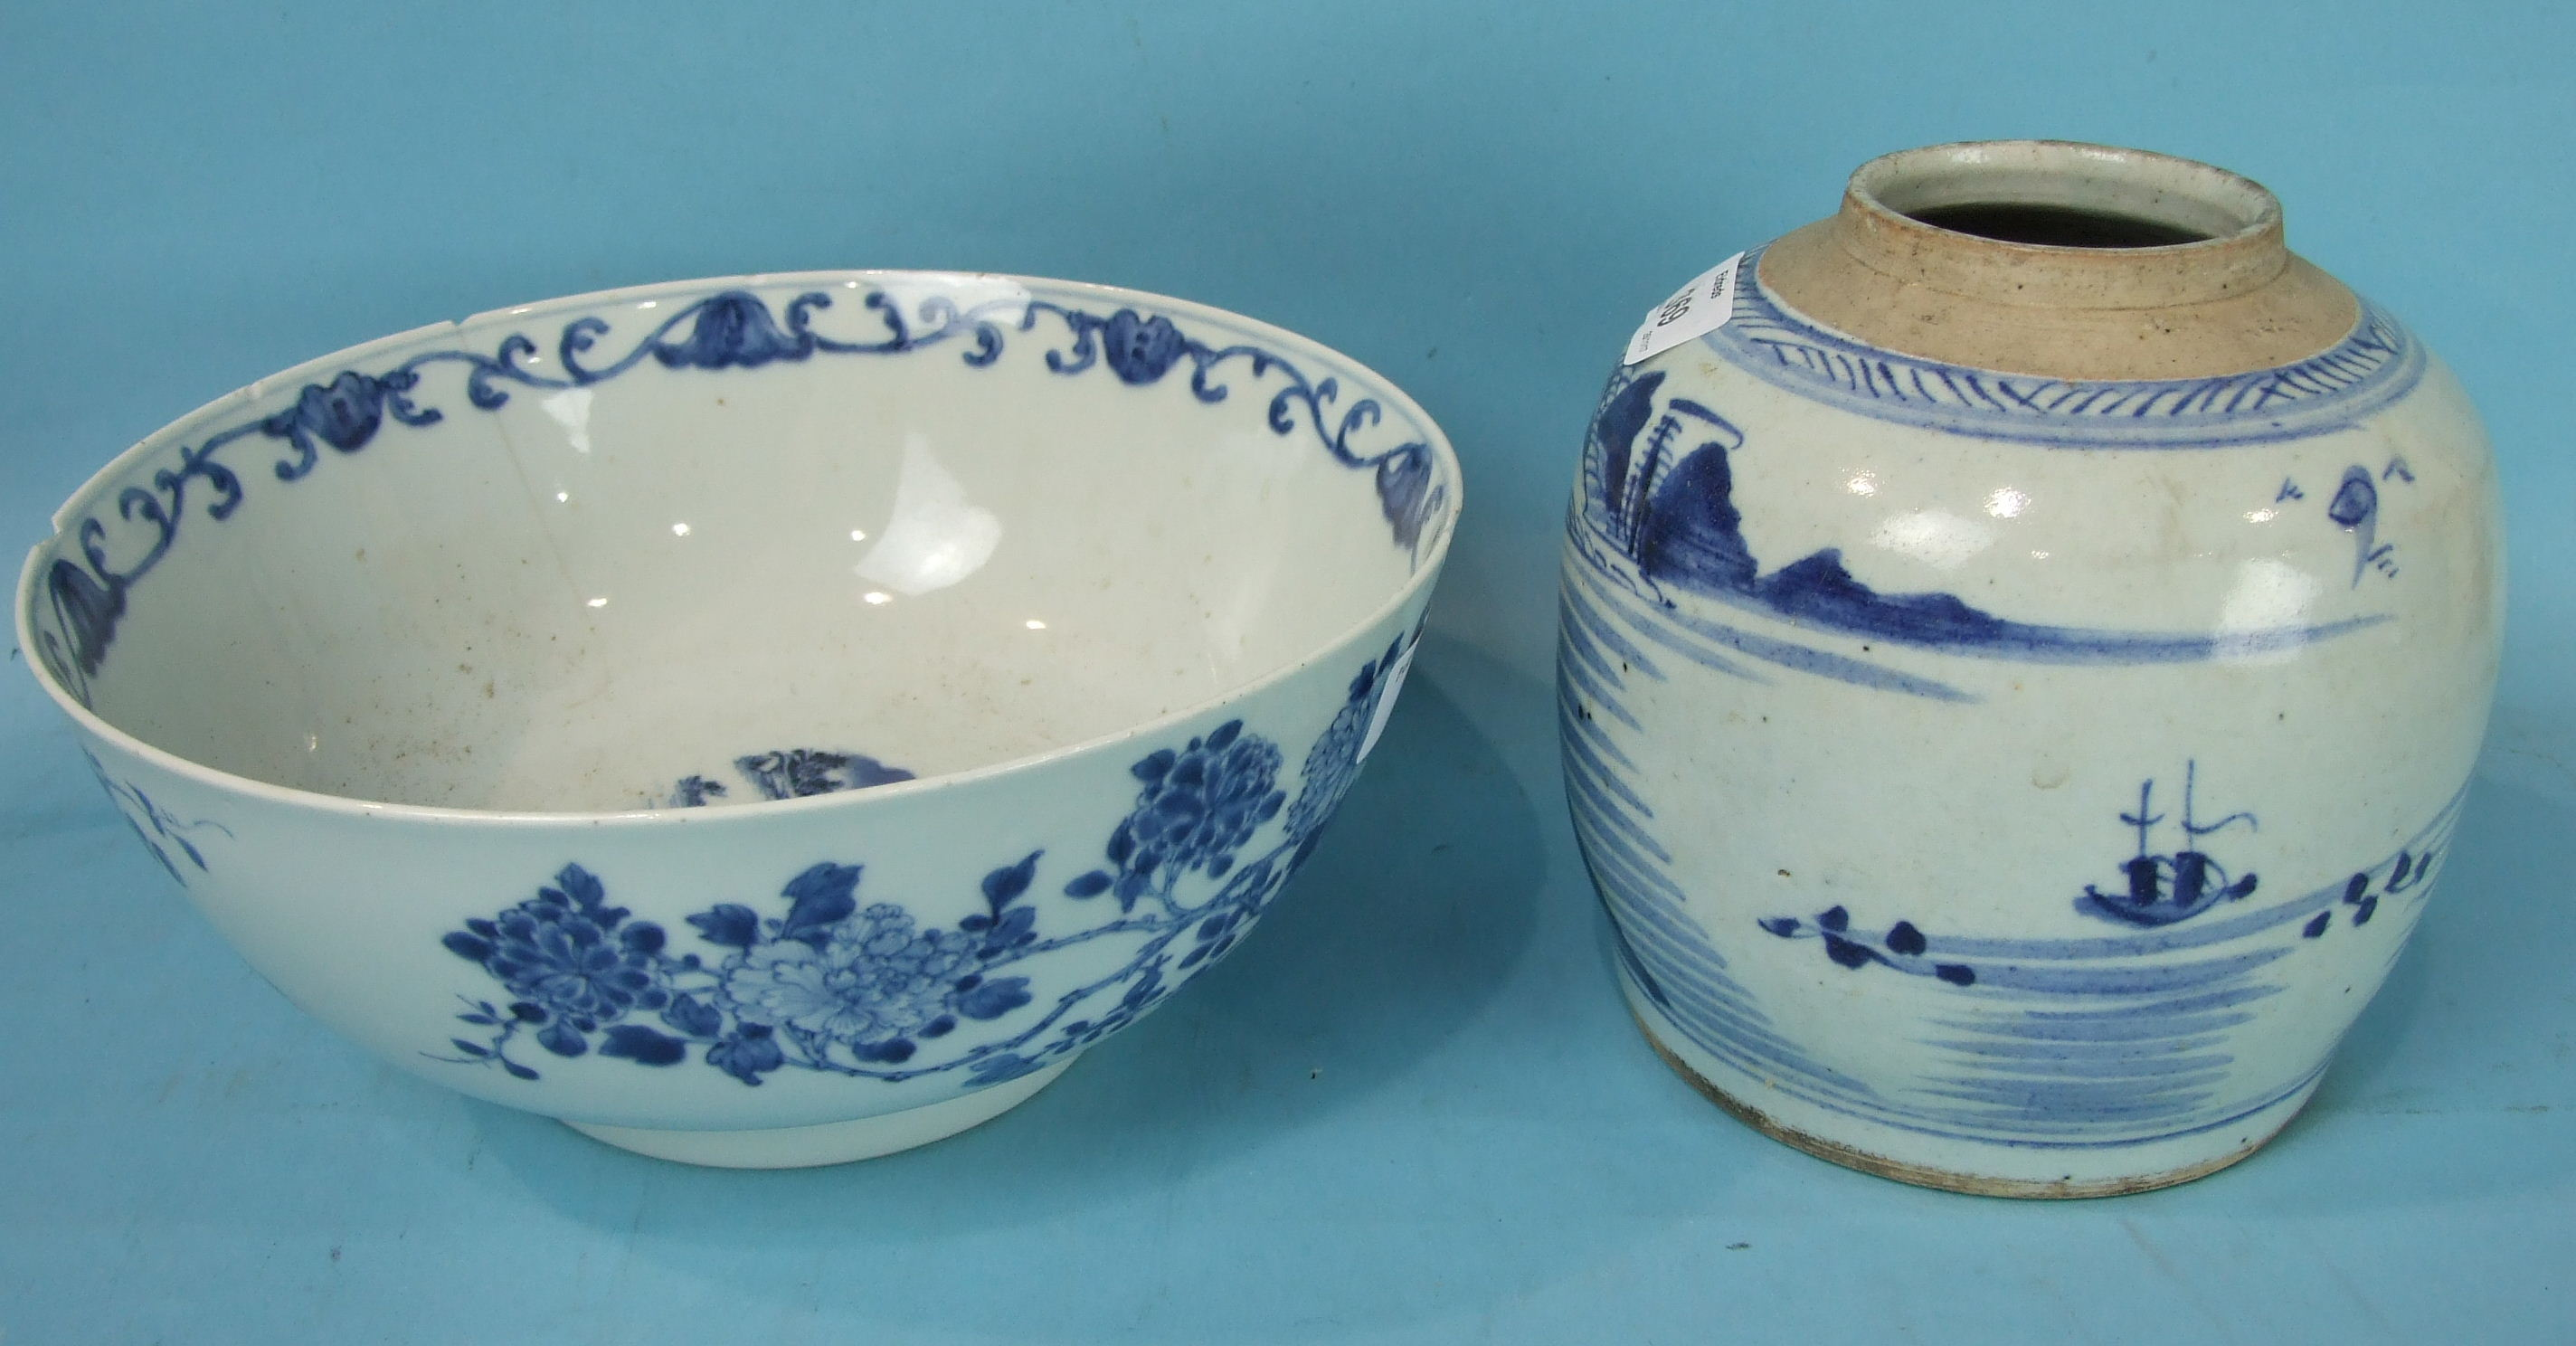 Lot 369 - A large group of 18th and 19th century Chinese plates, a bowl, a jar and a small saucer tureen base,